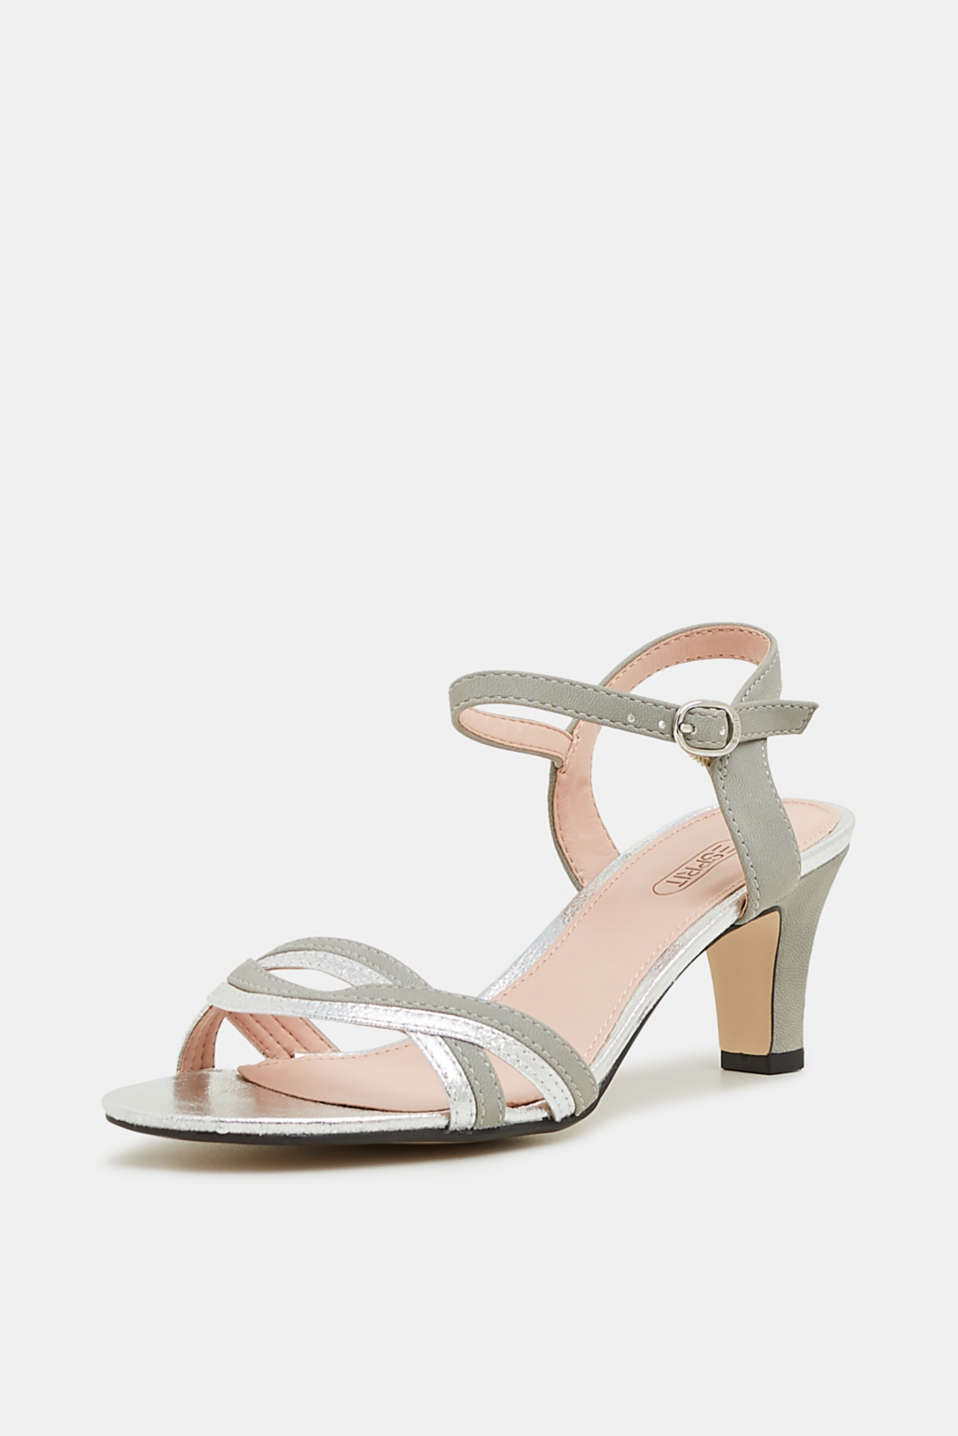 Faux leather sandals with metallic accents, SILVER, detail image number 2